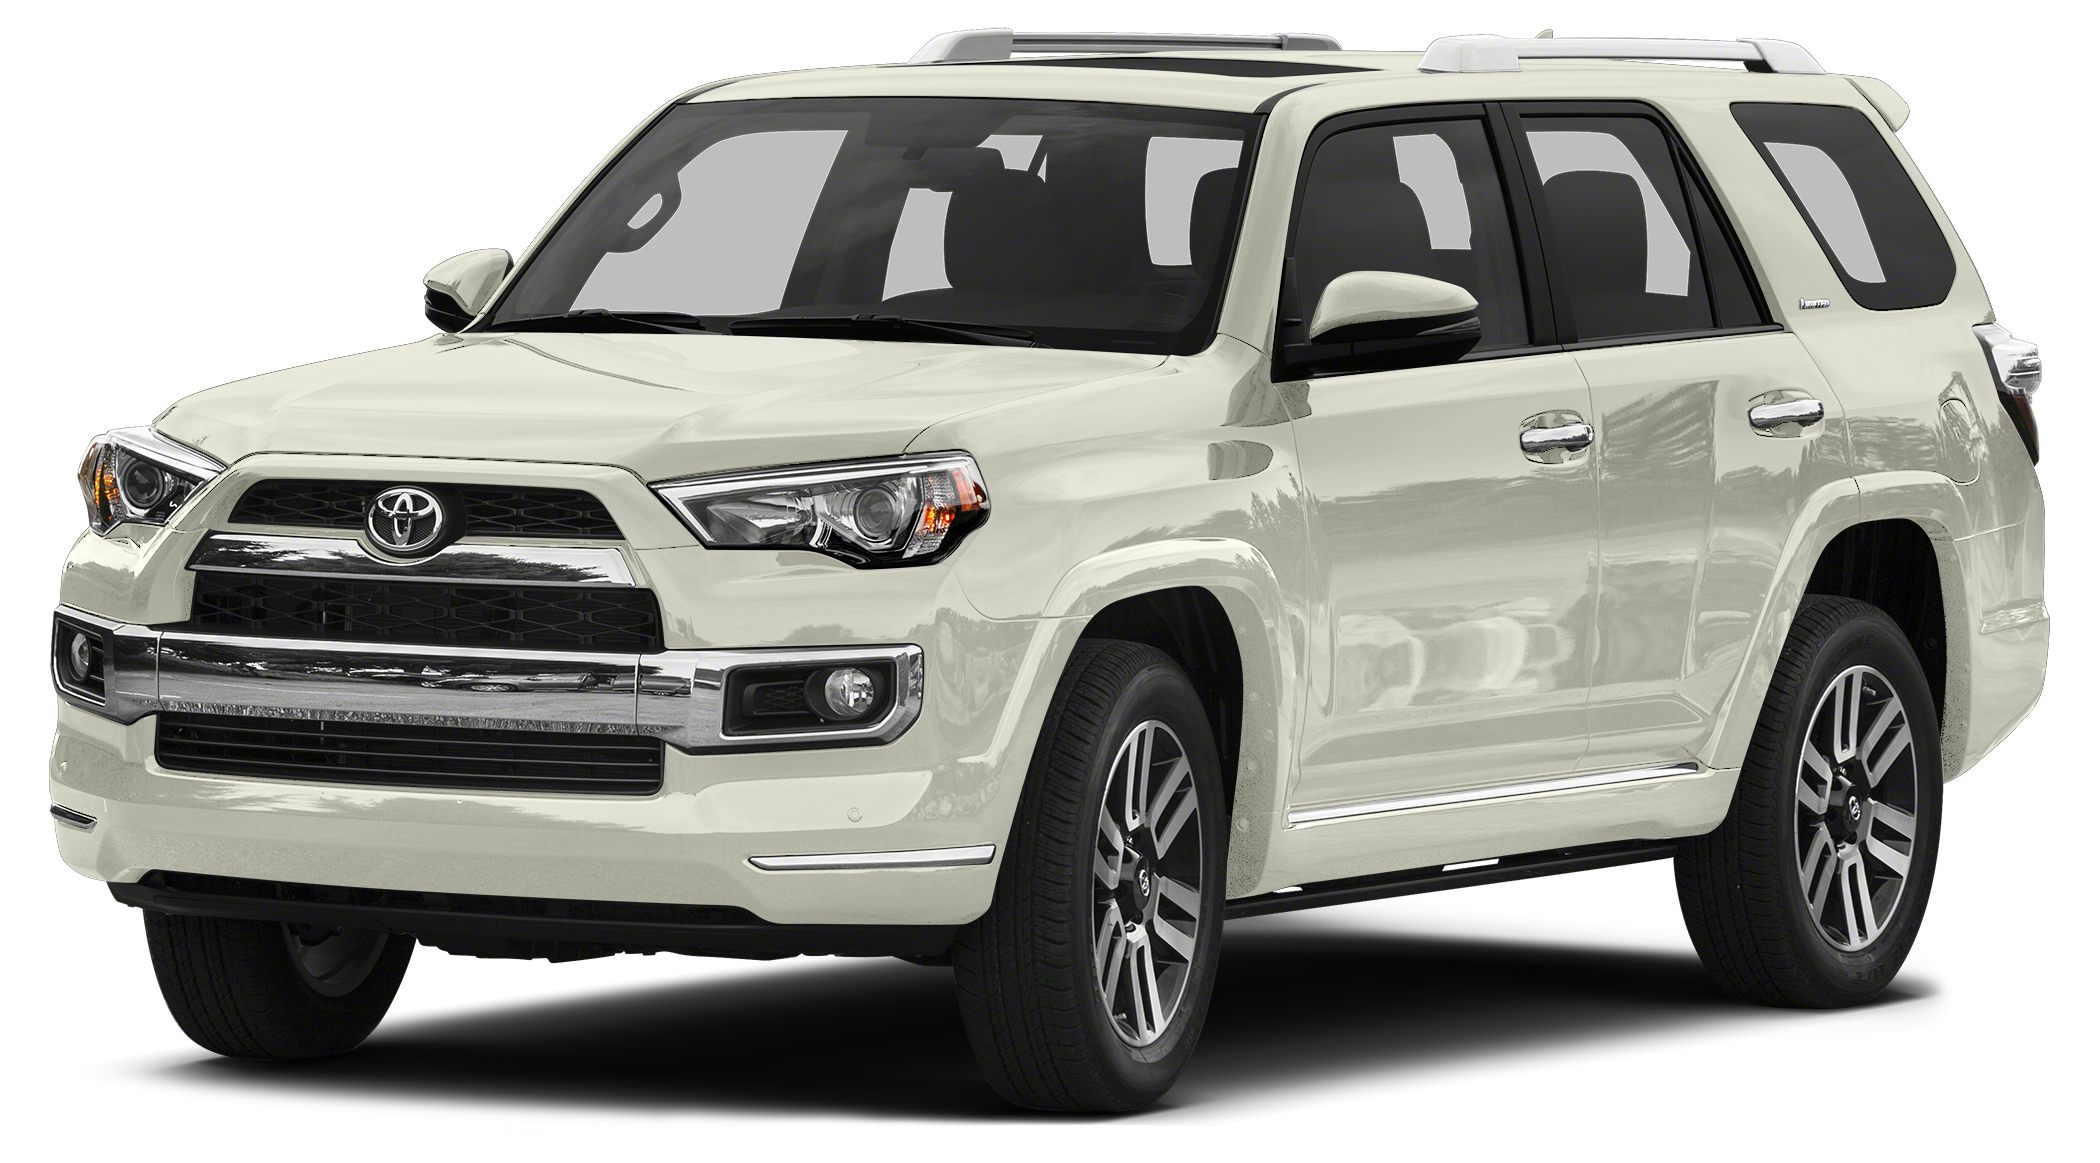 2015 Toyota 4Runner Limited A family commuter on the weekdays and off-road adventurer on the weeke